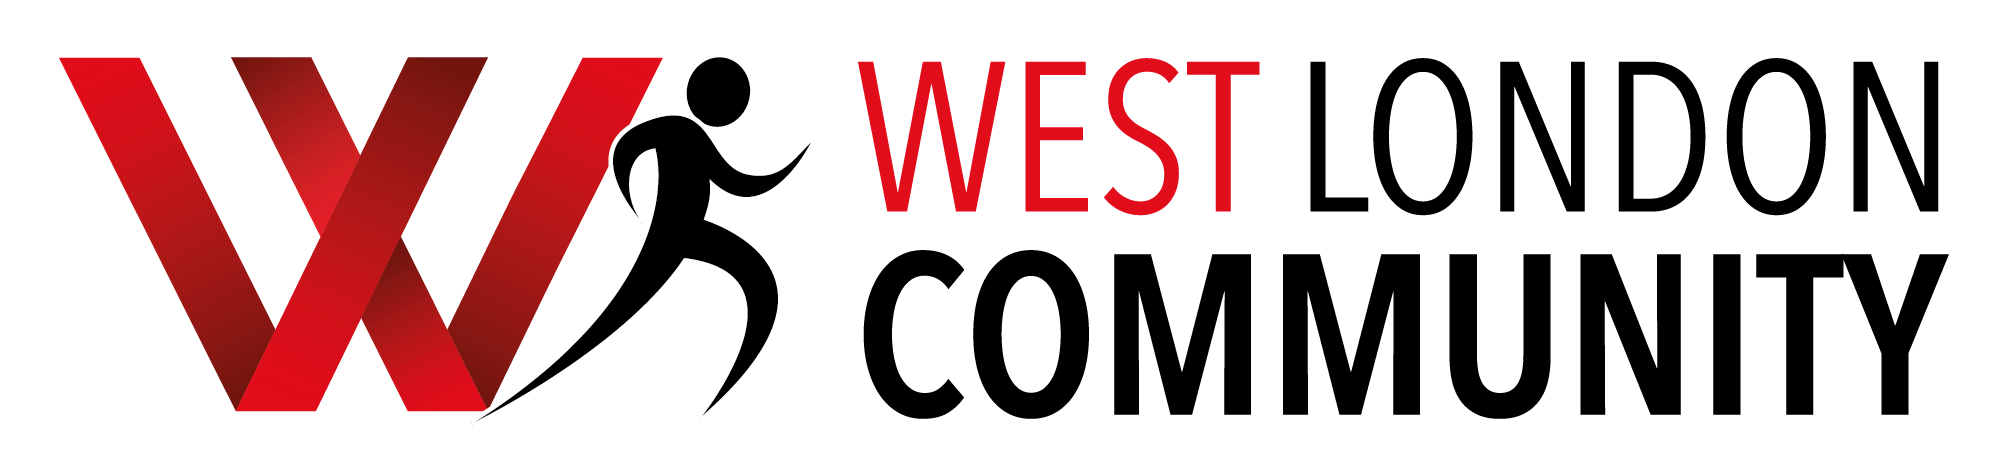 http://londonbroncosrl.com/wp-content/uploads/2021/03/WEST_LONDON_COMMUNITY_LOGO-WHITE-BACKGROUND.png